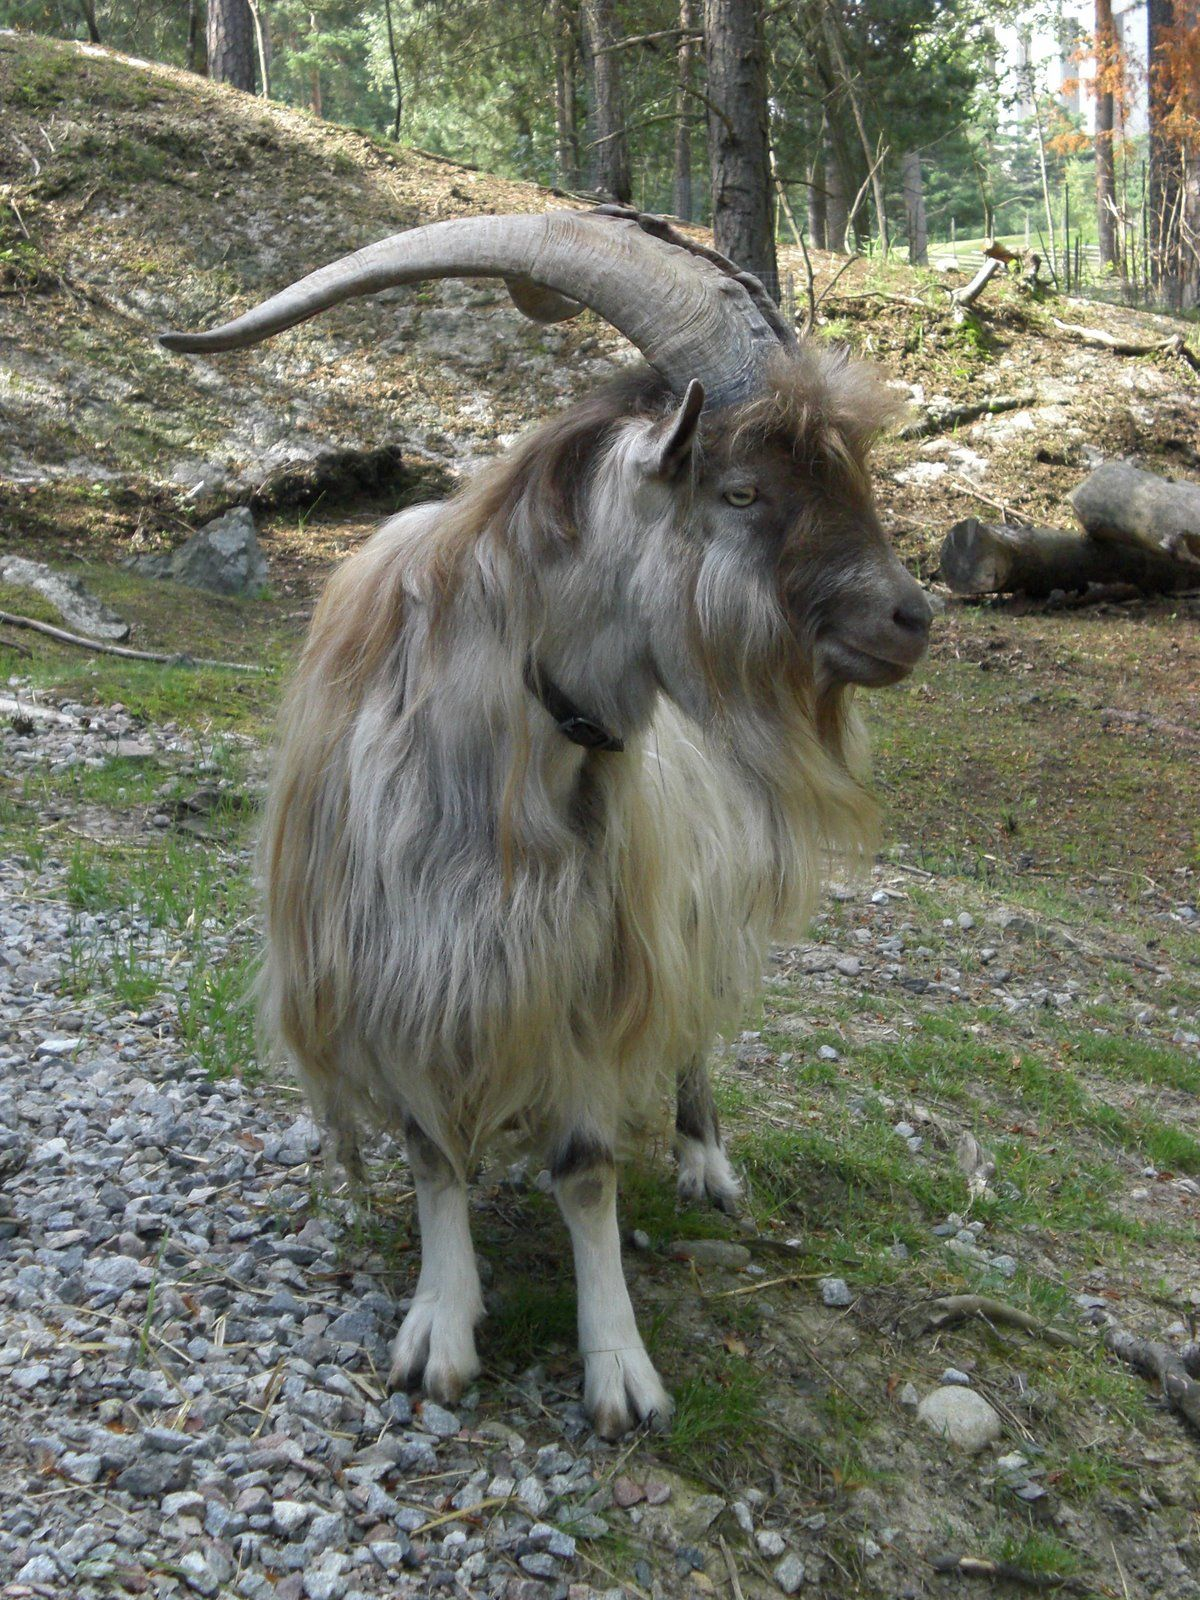 A Goat S Journey Over Life S: The Peasantry Goat Is A Type Of The Swedish